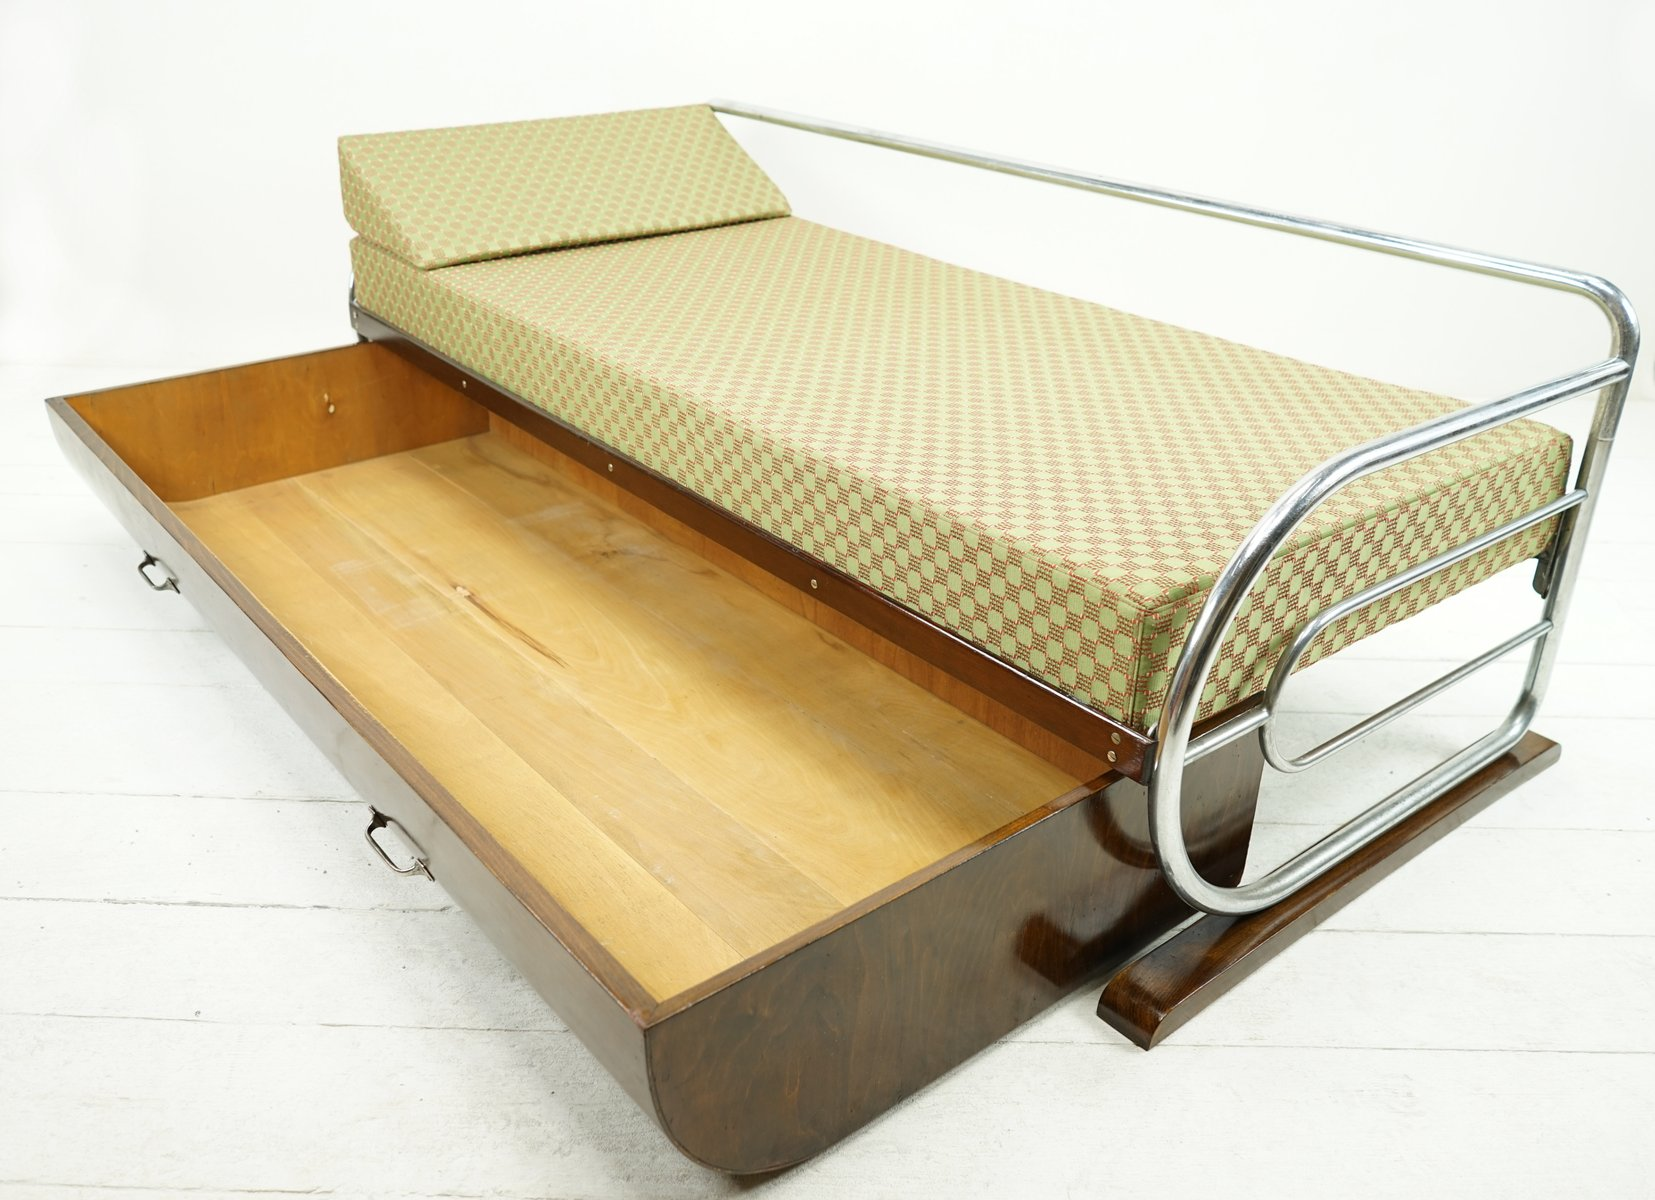 Bauhaus daybed sofa with bed drawer from gottwald for sale at pamono Daybed sofa couch